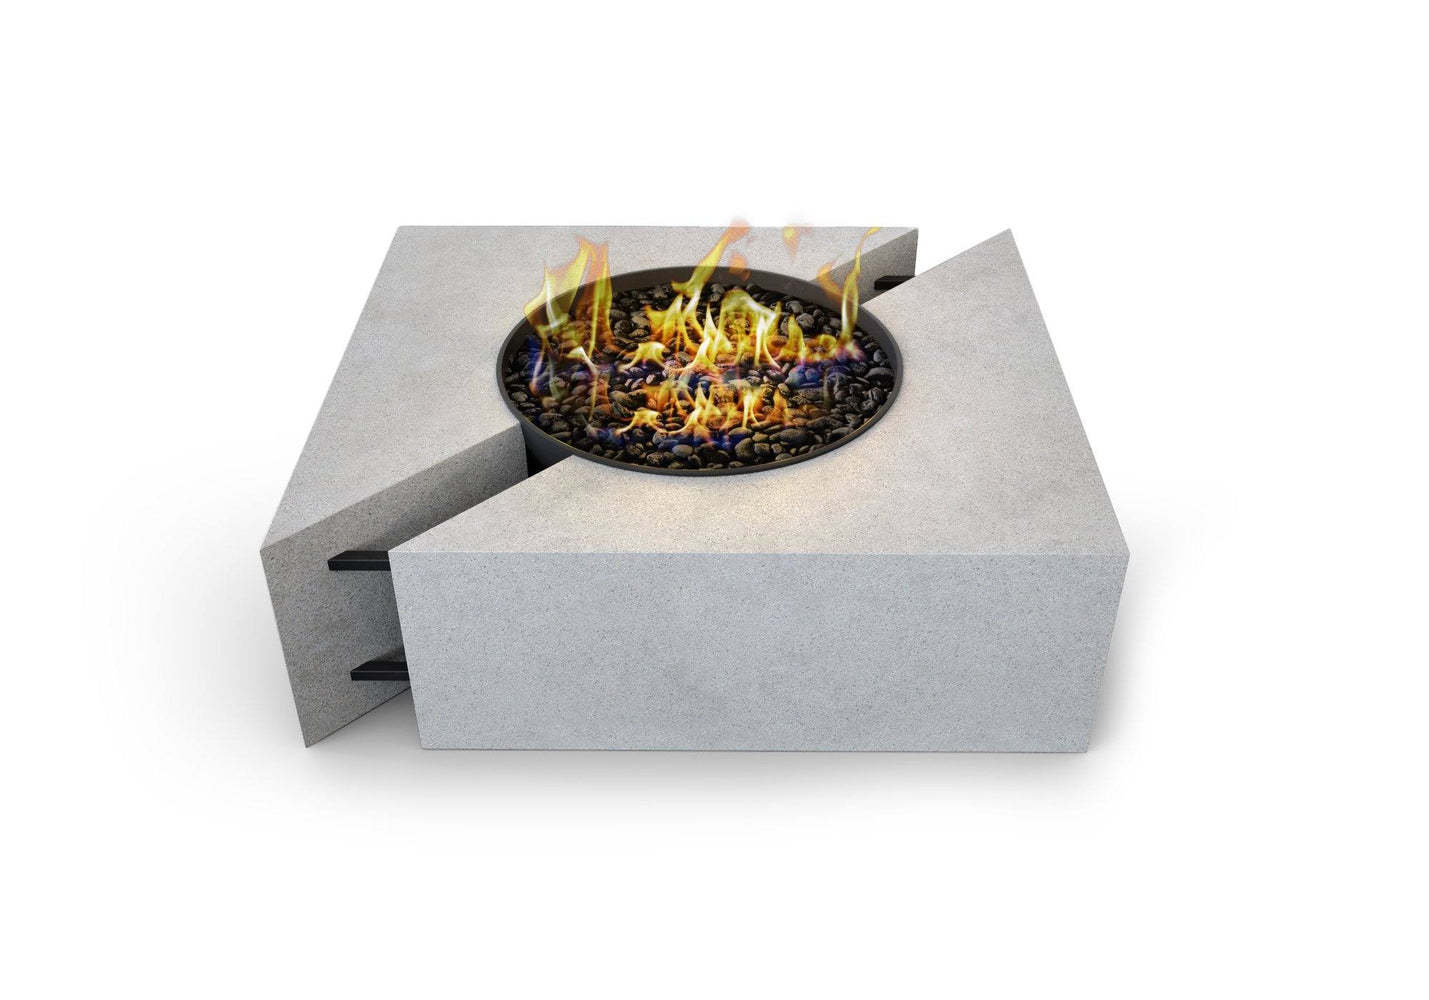 Chaos Concrete Fire Pit Table By Nisho - Nisho